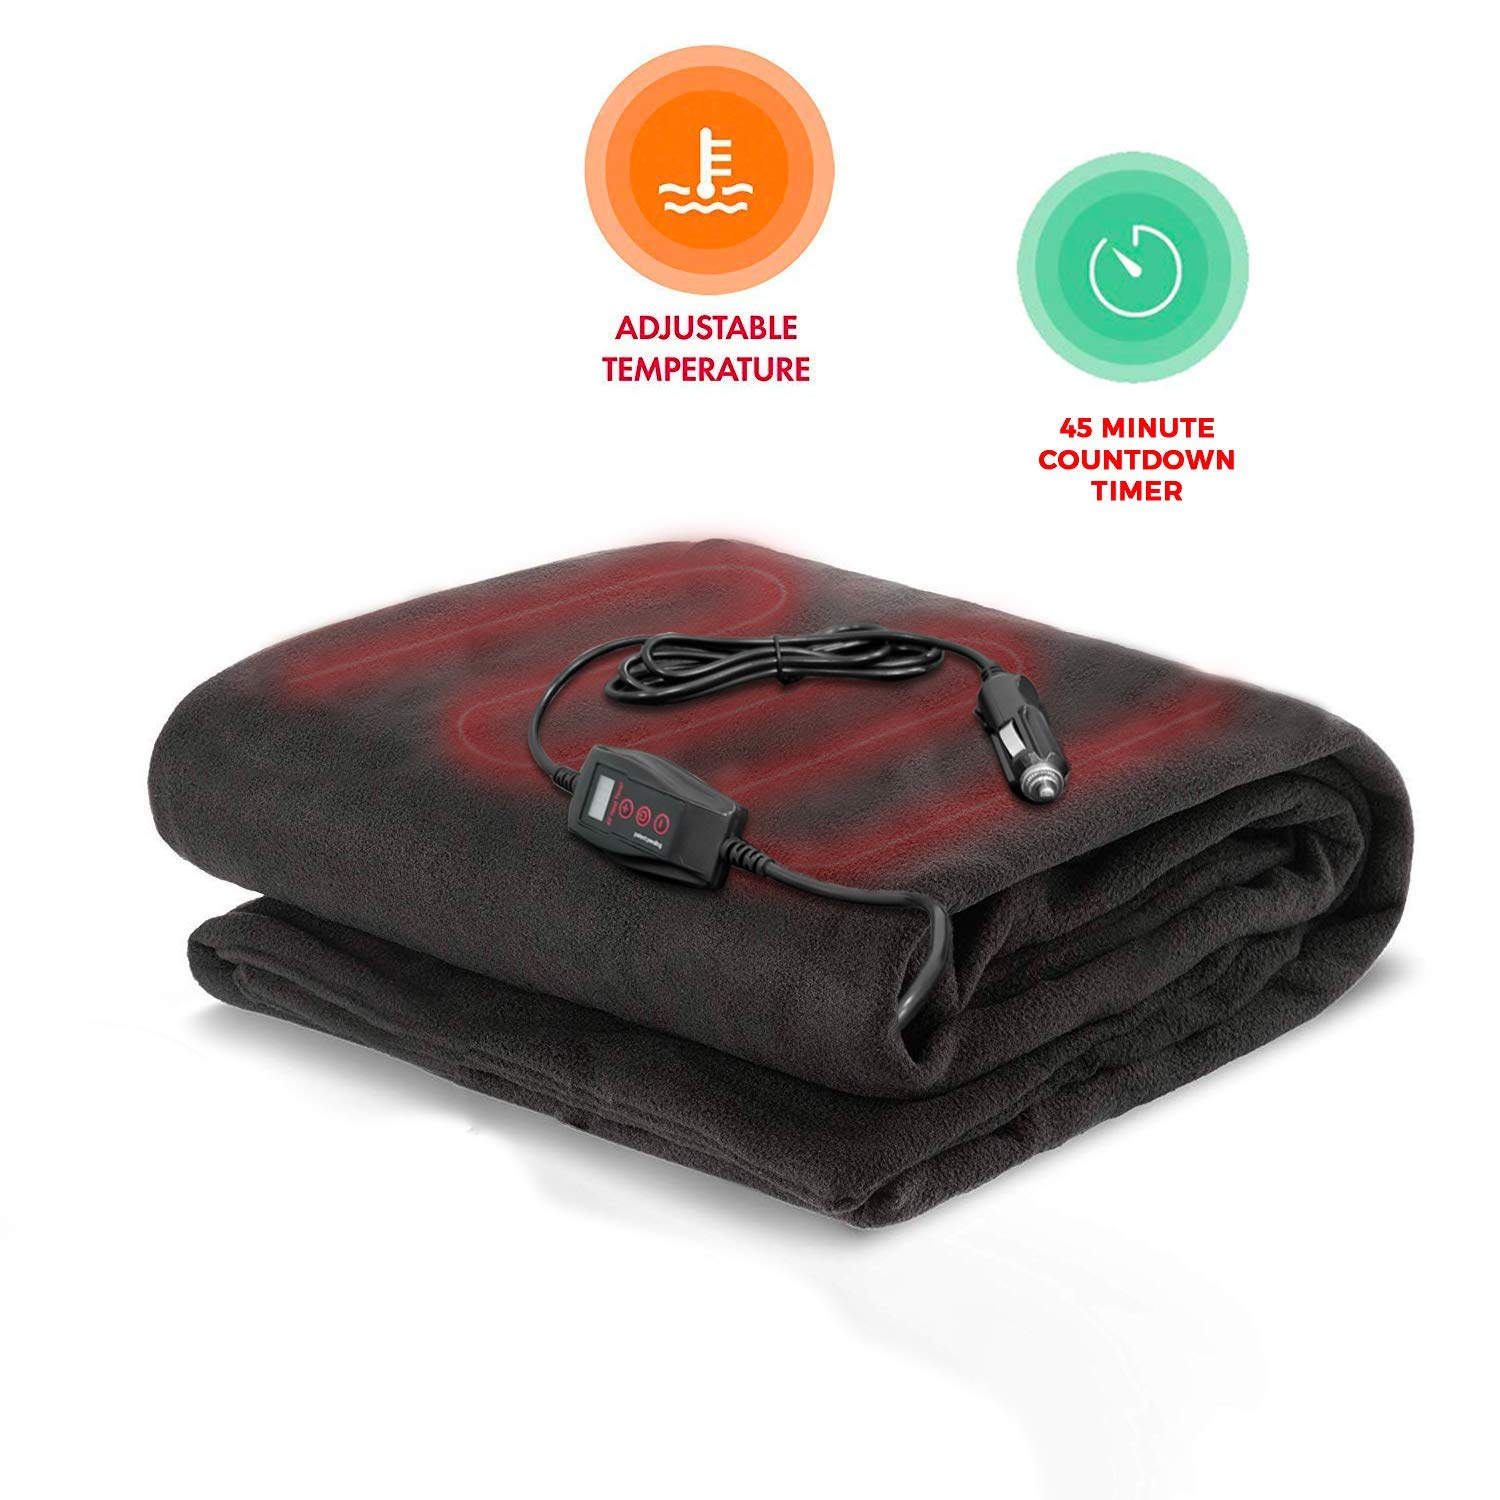 Zento Deals Electric Heated Car 12V Blanket- Polar Fleece Material Blanket - Cold Days and Nights Road Trip, Home and Camping, Safer Nonflammable Wiring and Fabric by Zento Deals